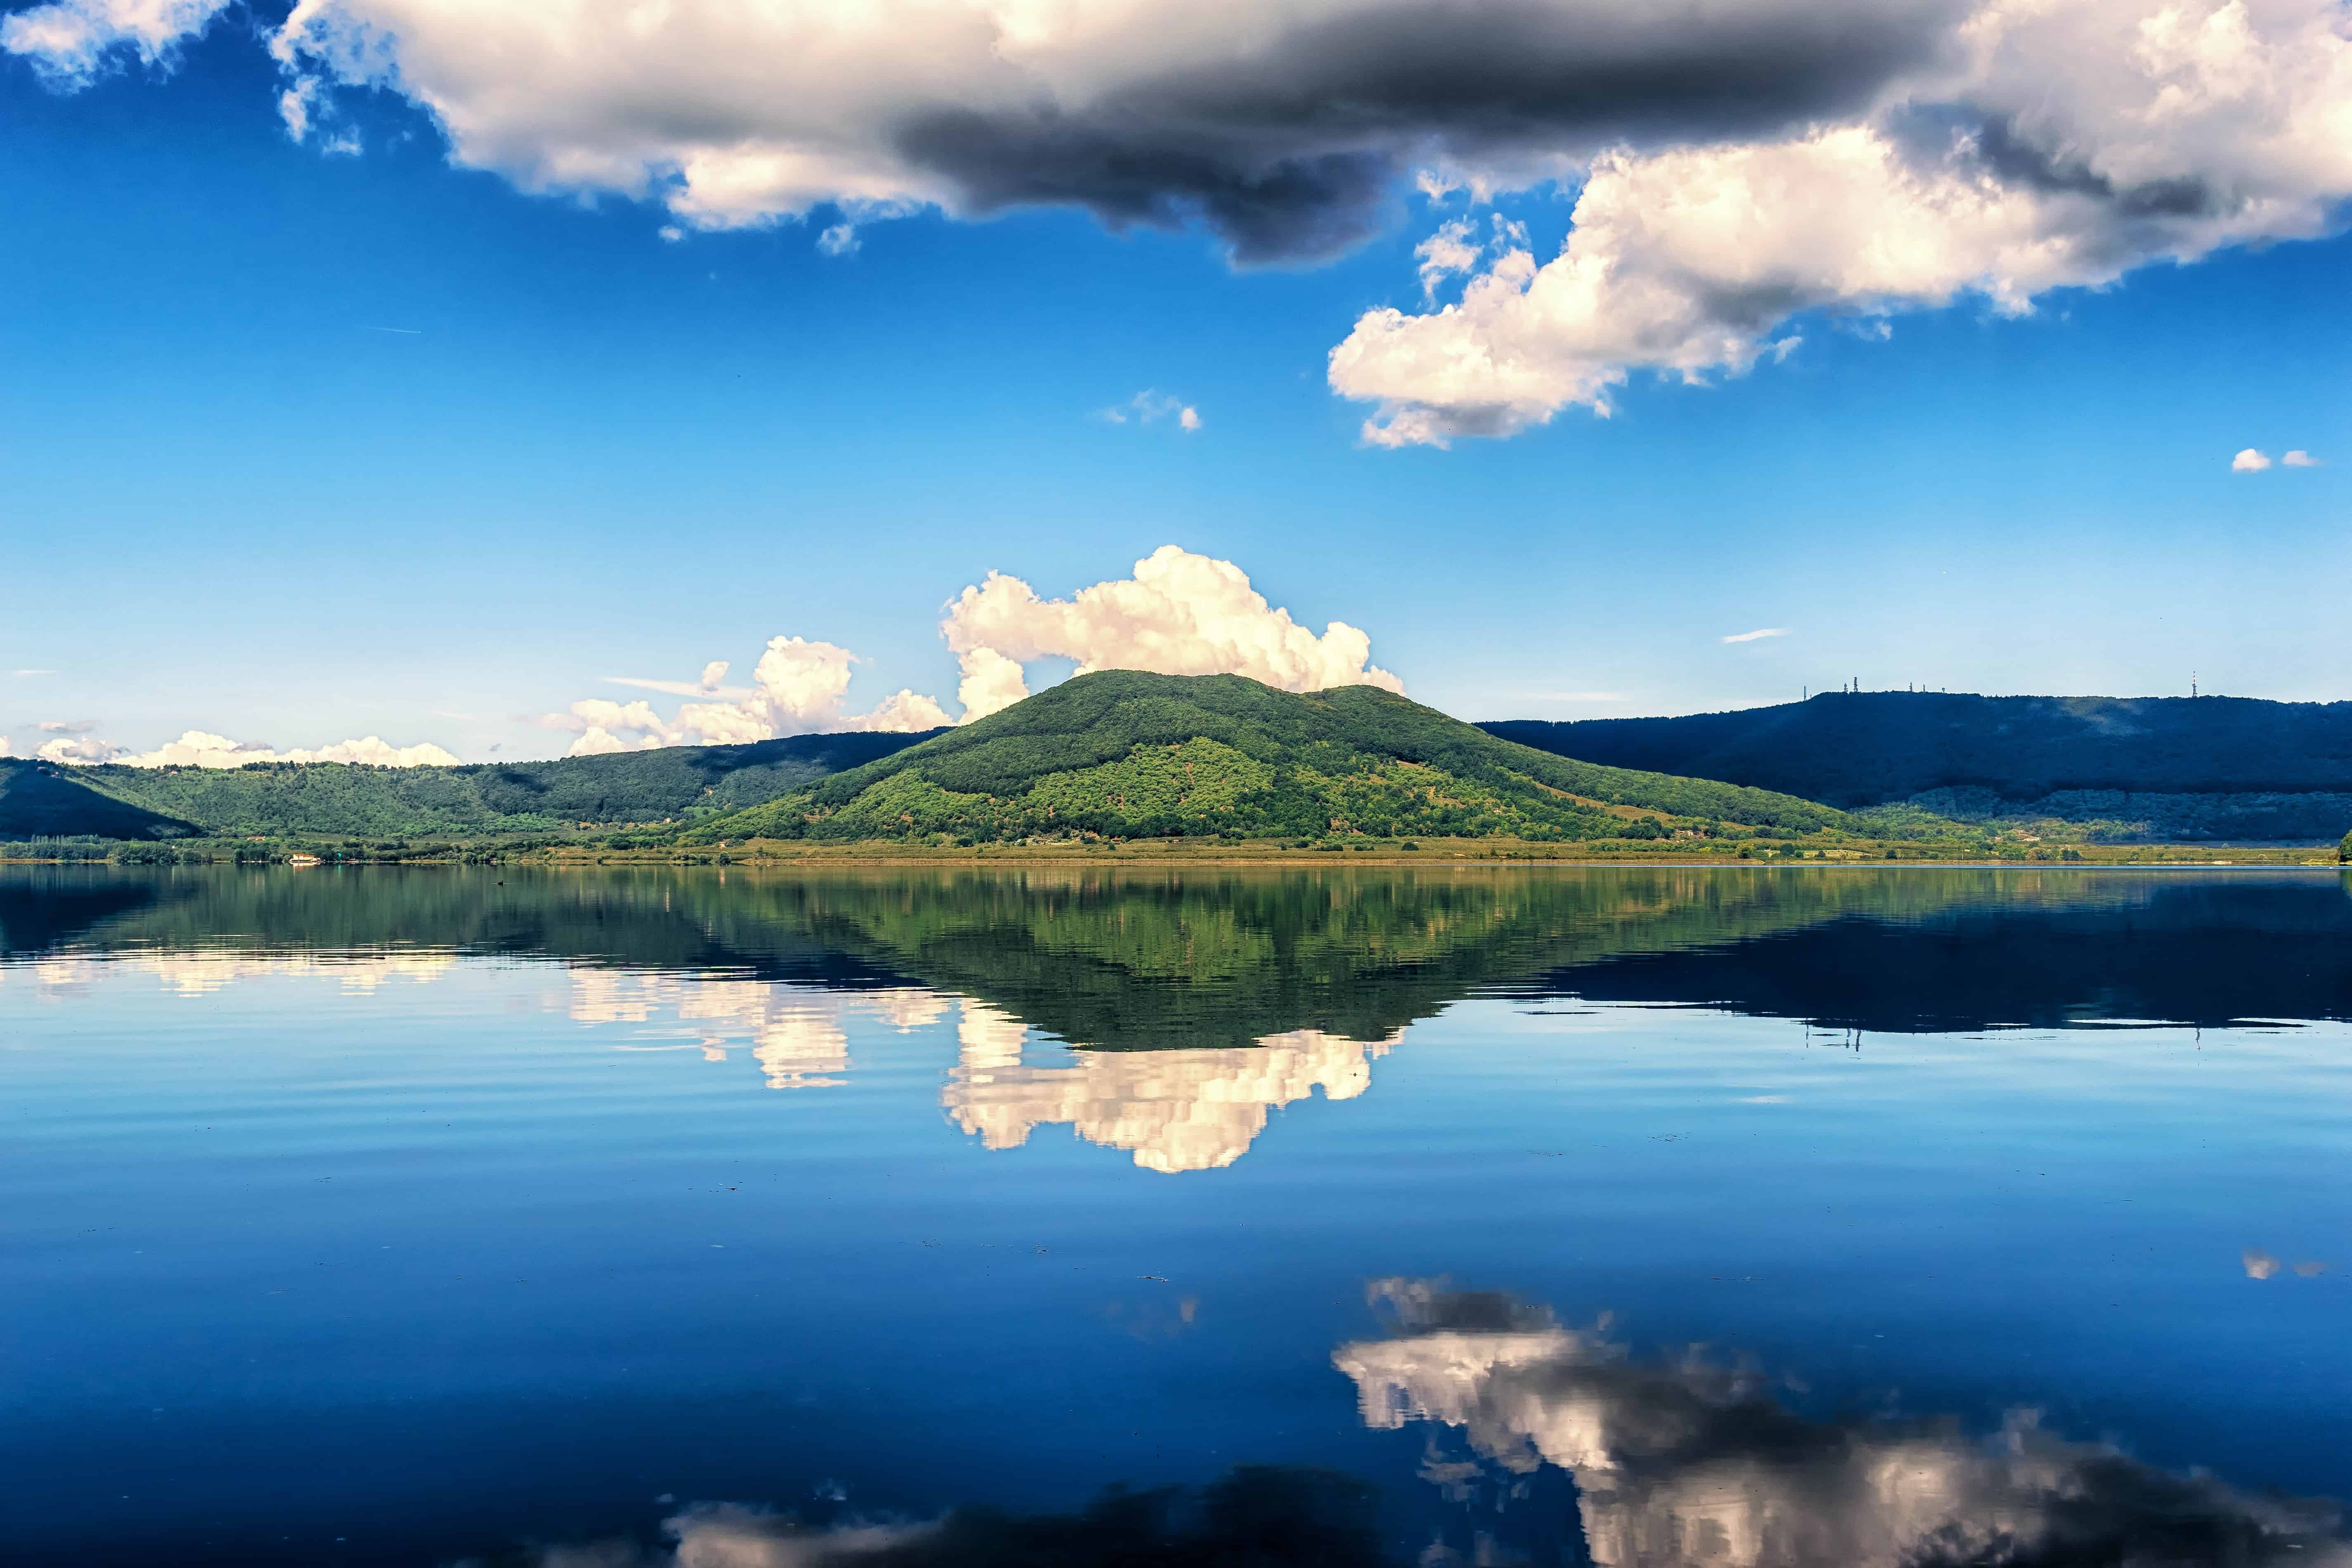 Free picture: reflection, water, landscape, nature, blue sky, lake ...